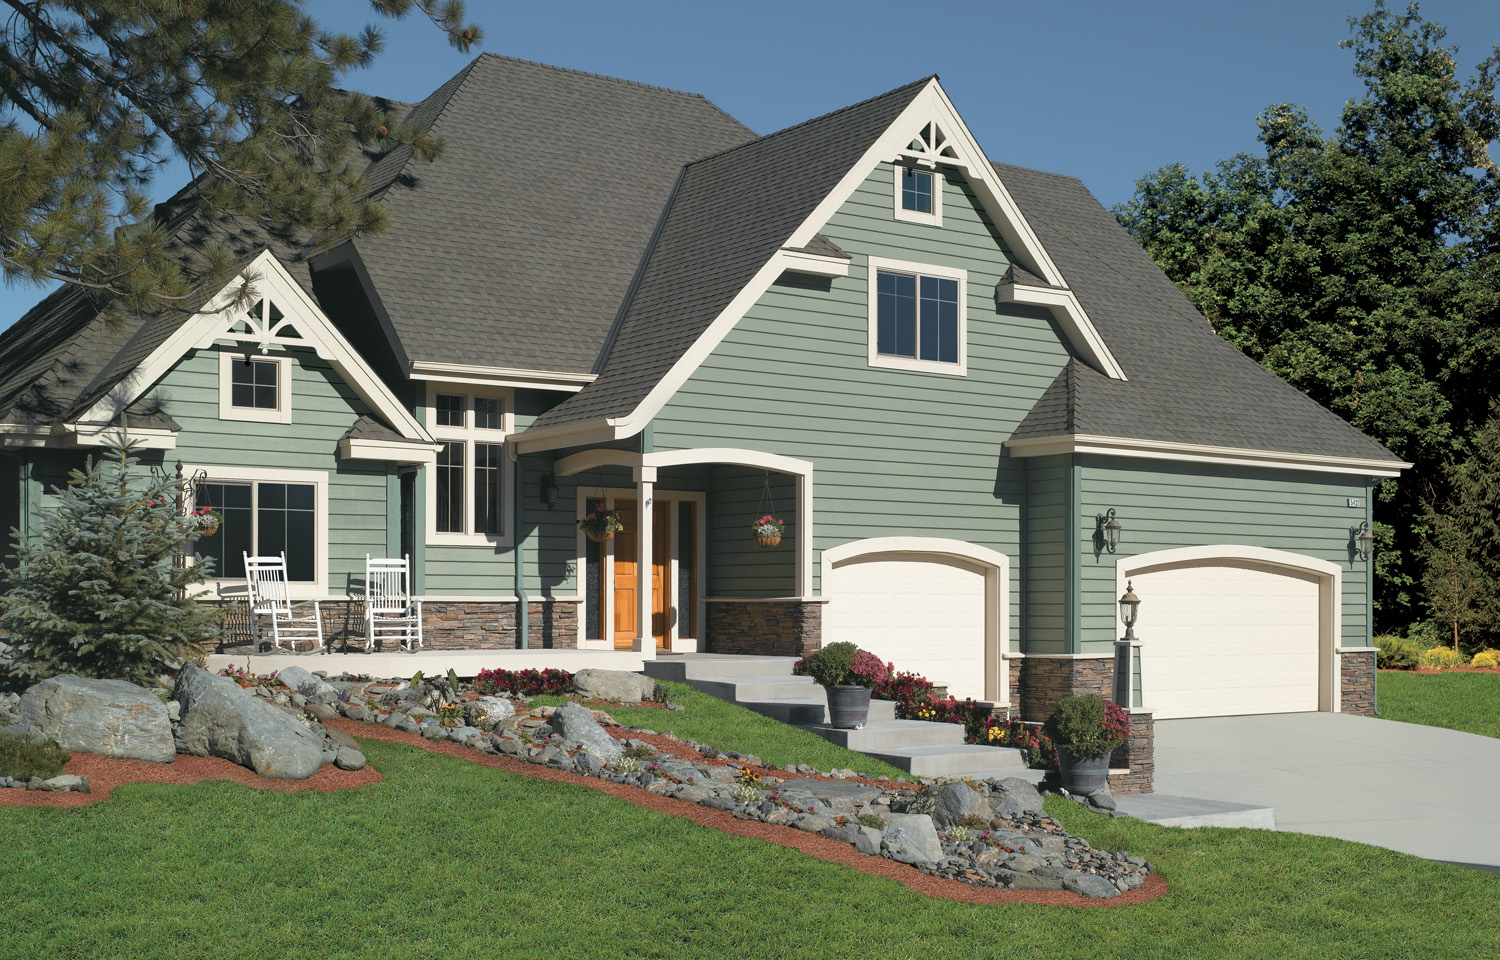 50 Stunning House Siding Ideas | Allura USA on House Siding Ideas  id=90625